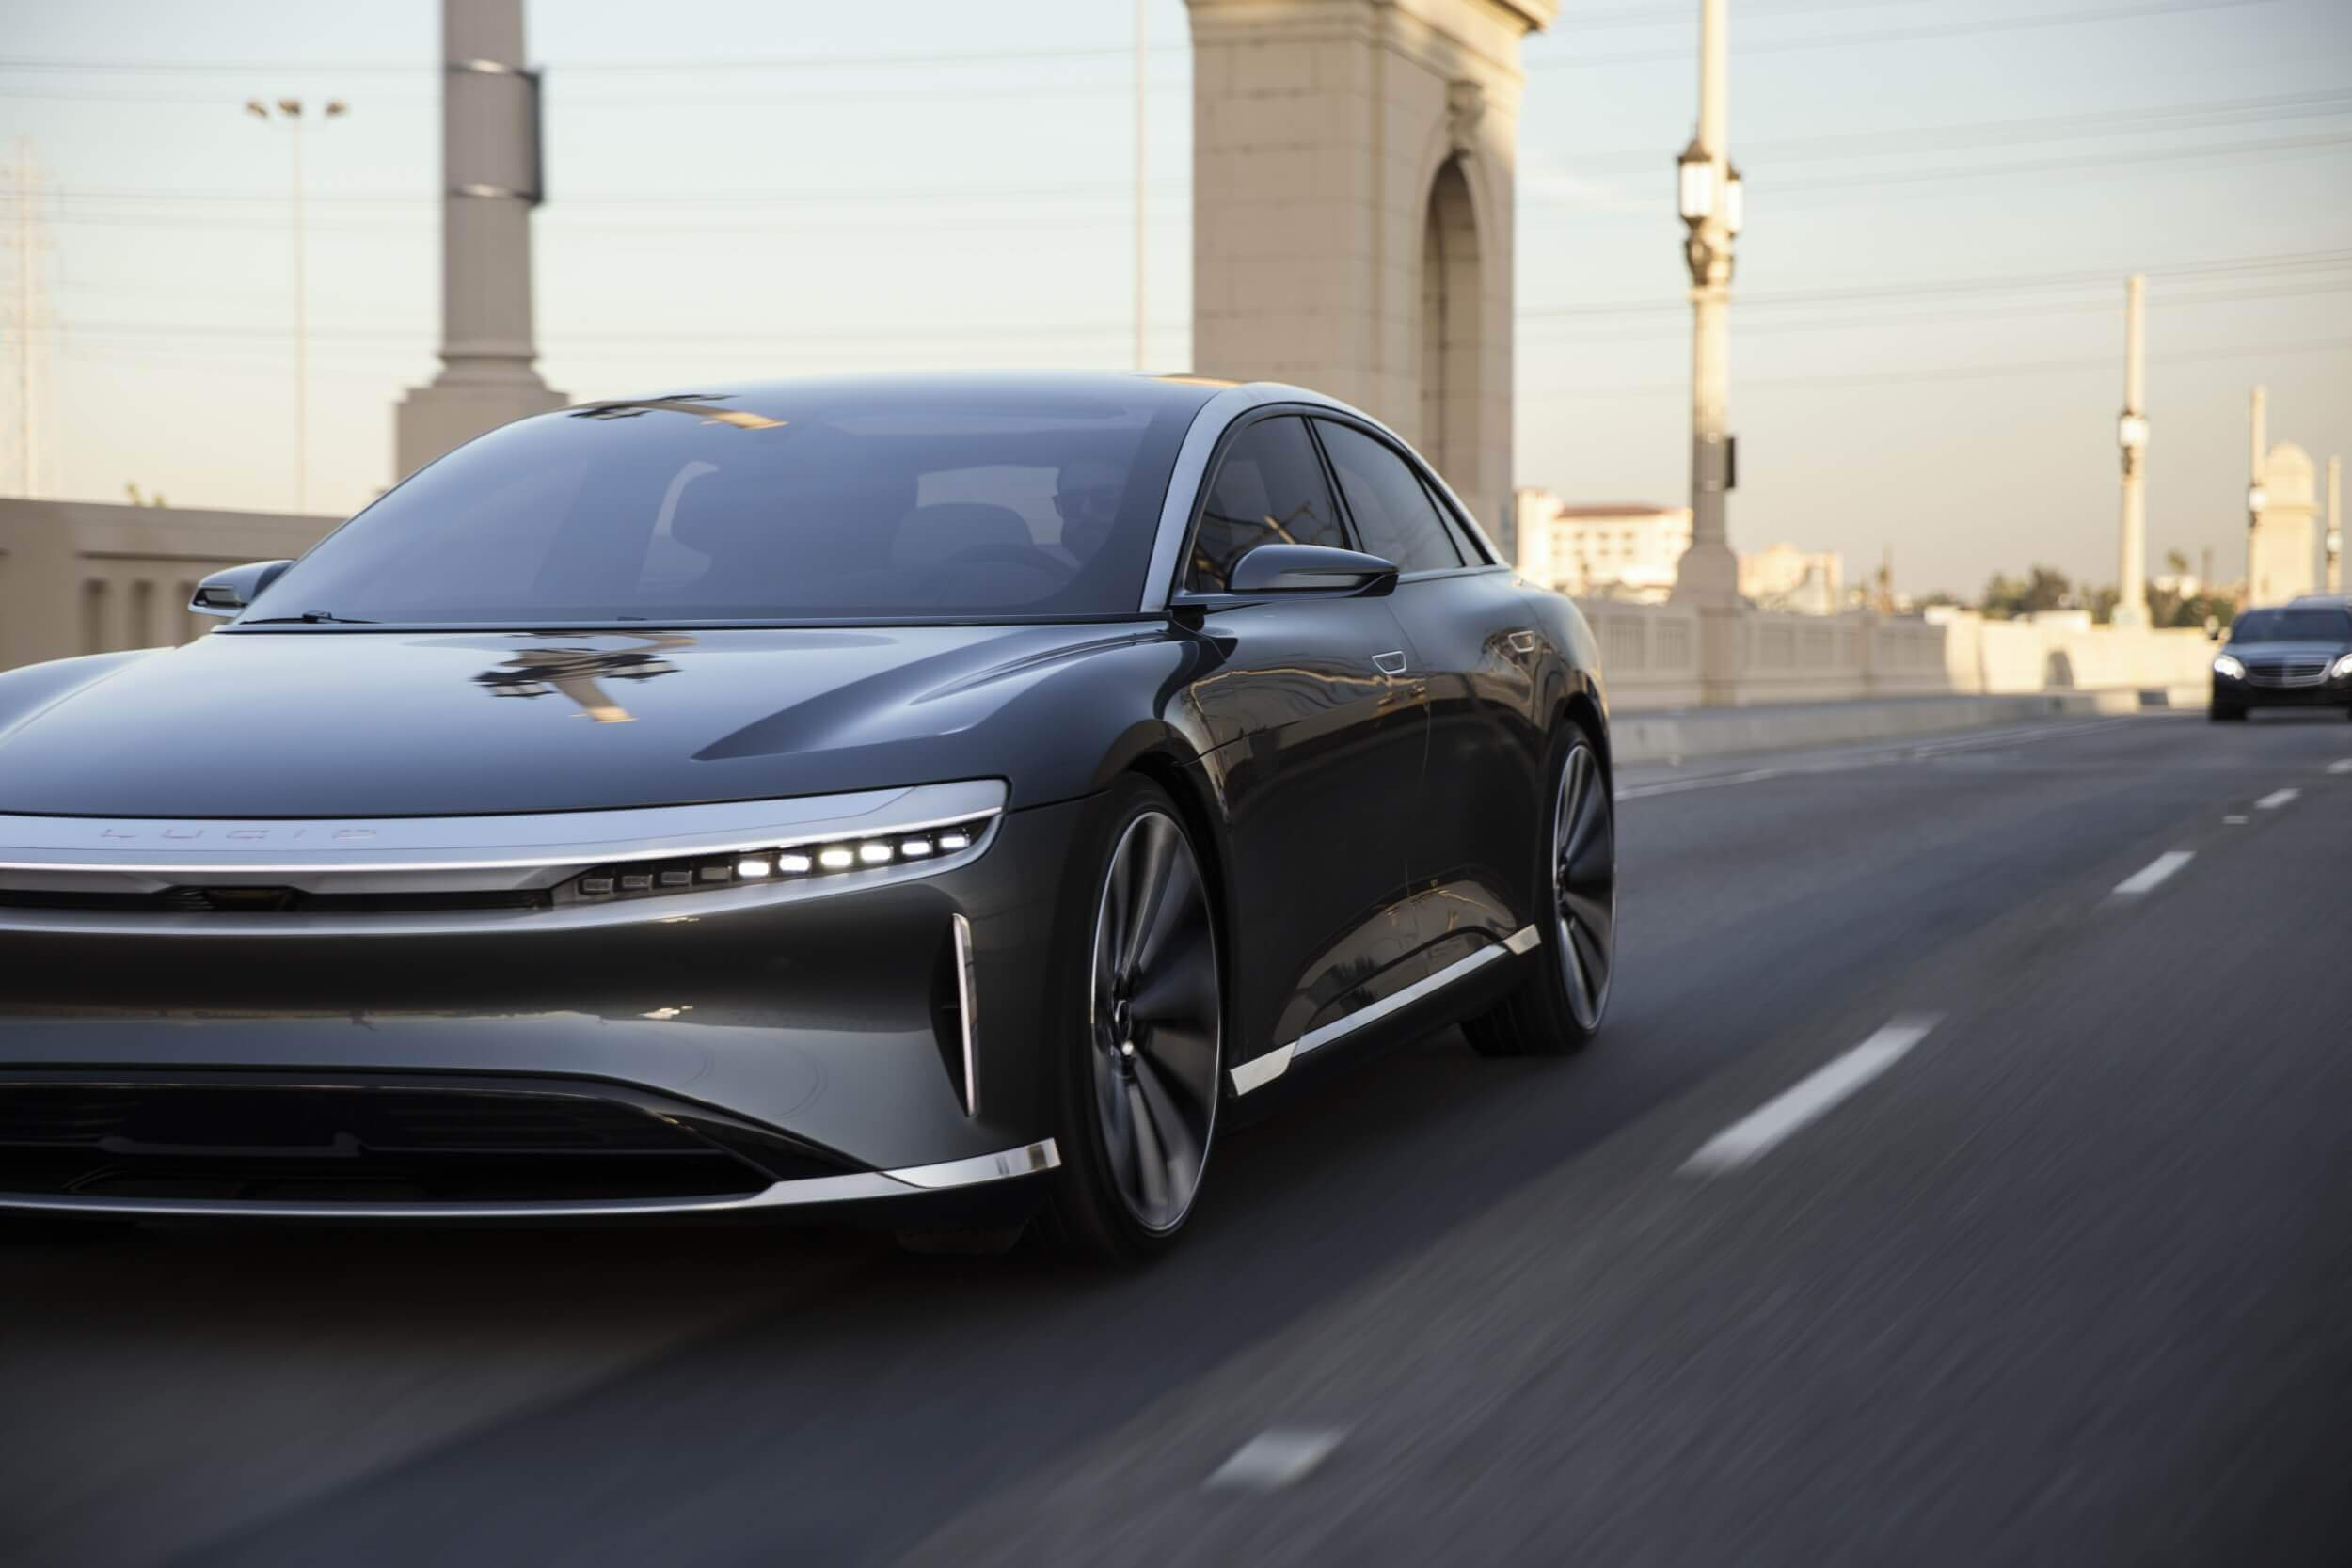 Lucid Motors says its all-electric Air sedan will have a range of 517 miles